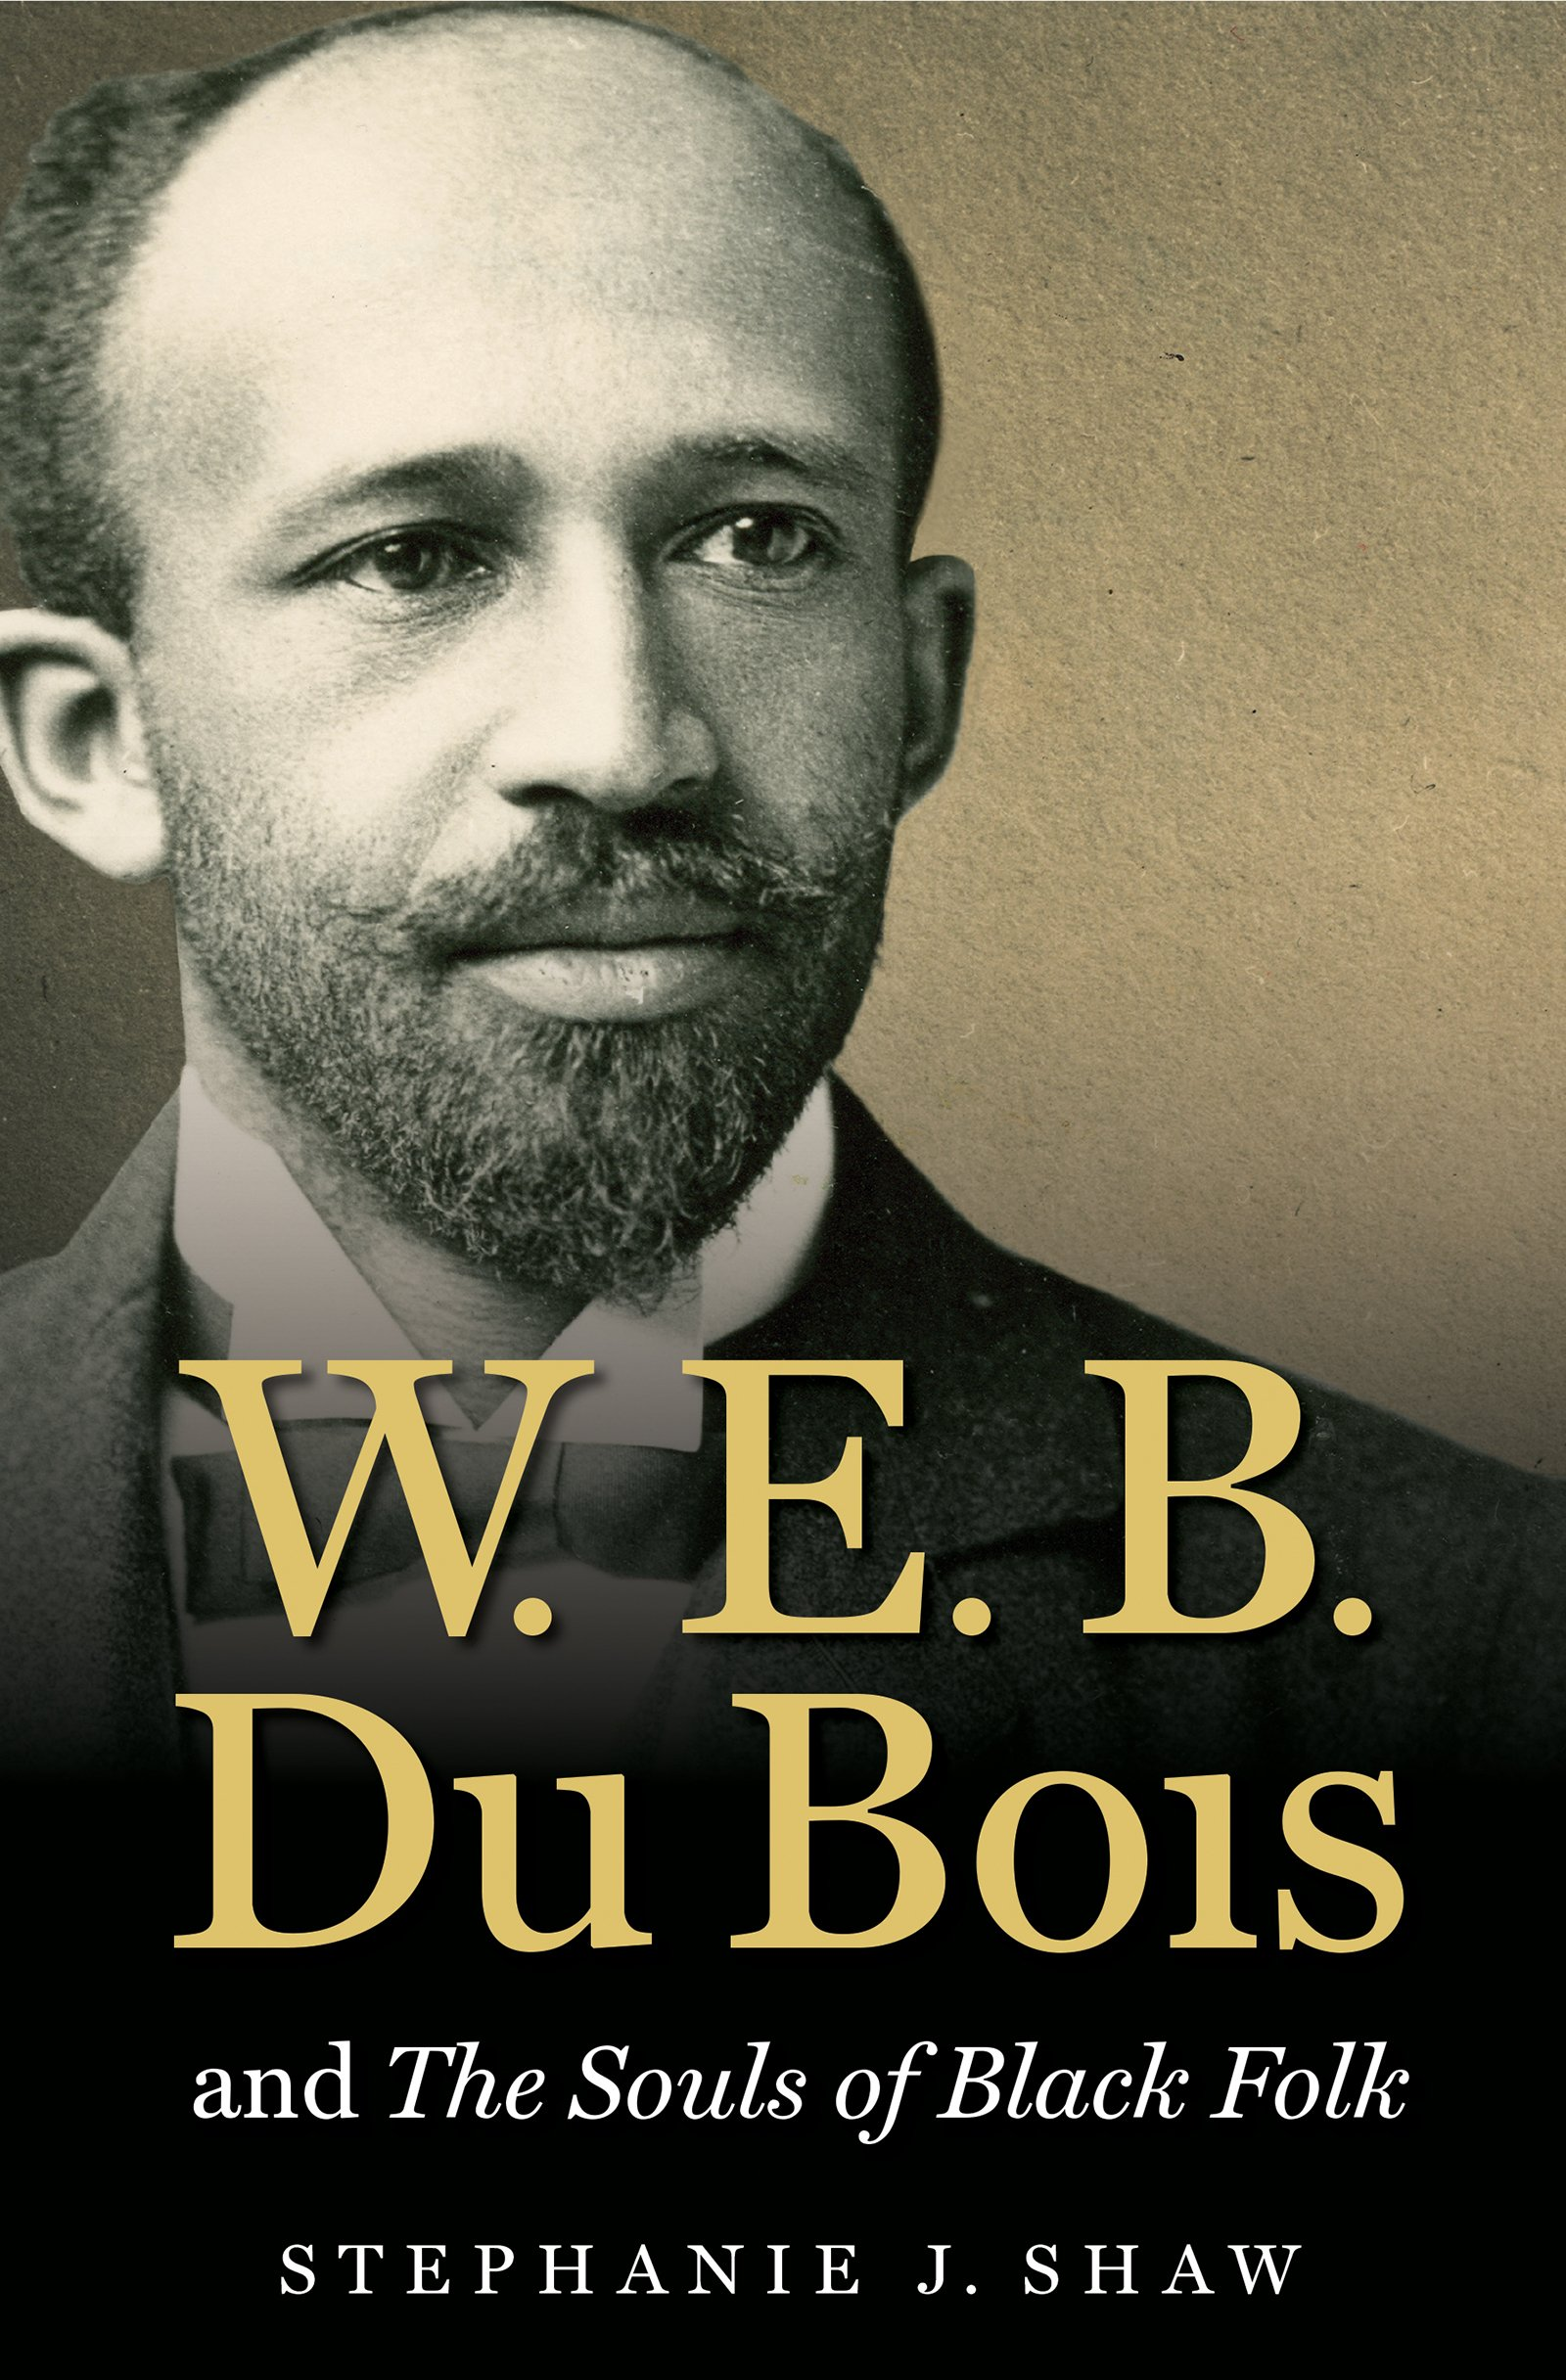 Amazon.com: W. E. B. Du Bois and The Souls of Black Folk (The John Hope  Franklin Series in African American History and Culture) (9781469626437):  Stephanie ...